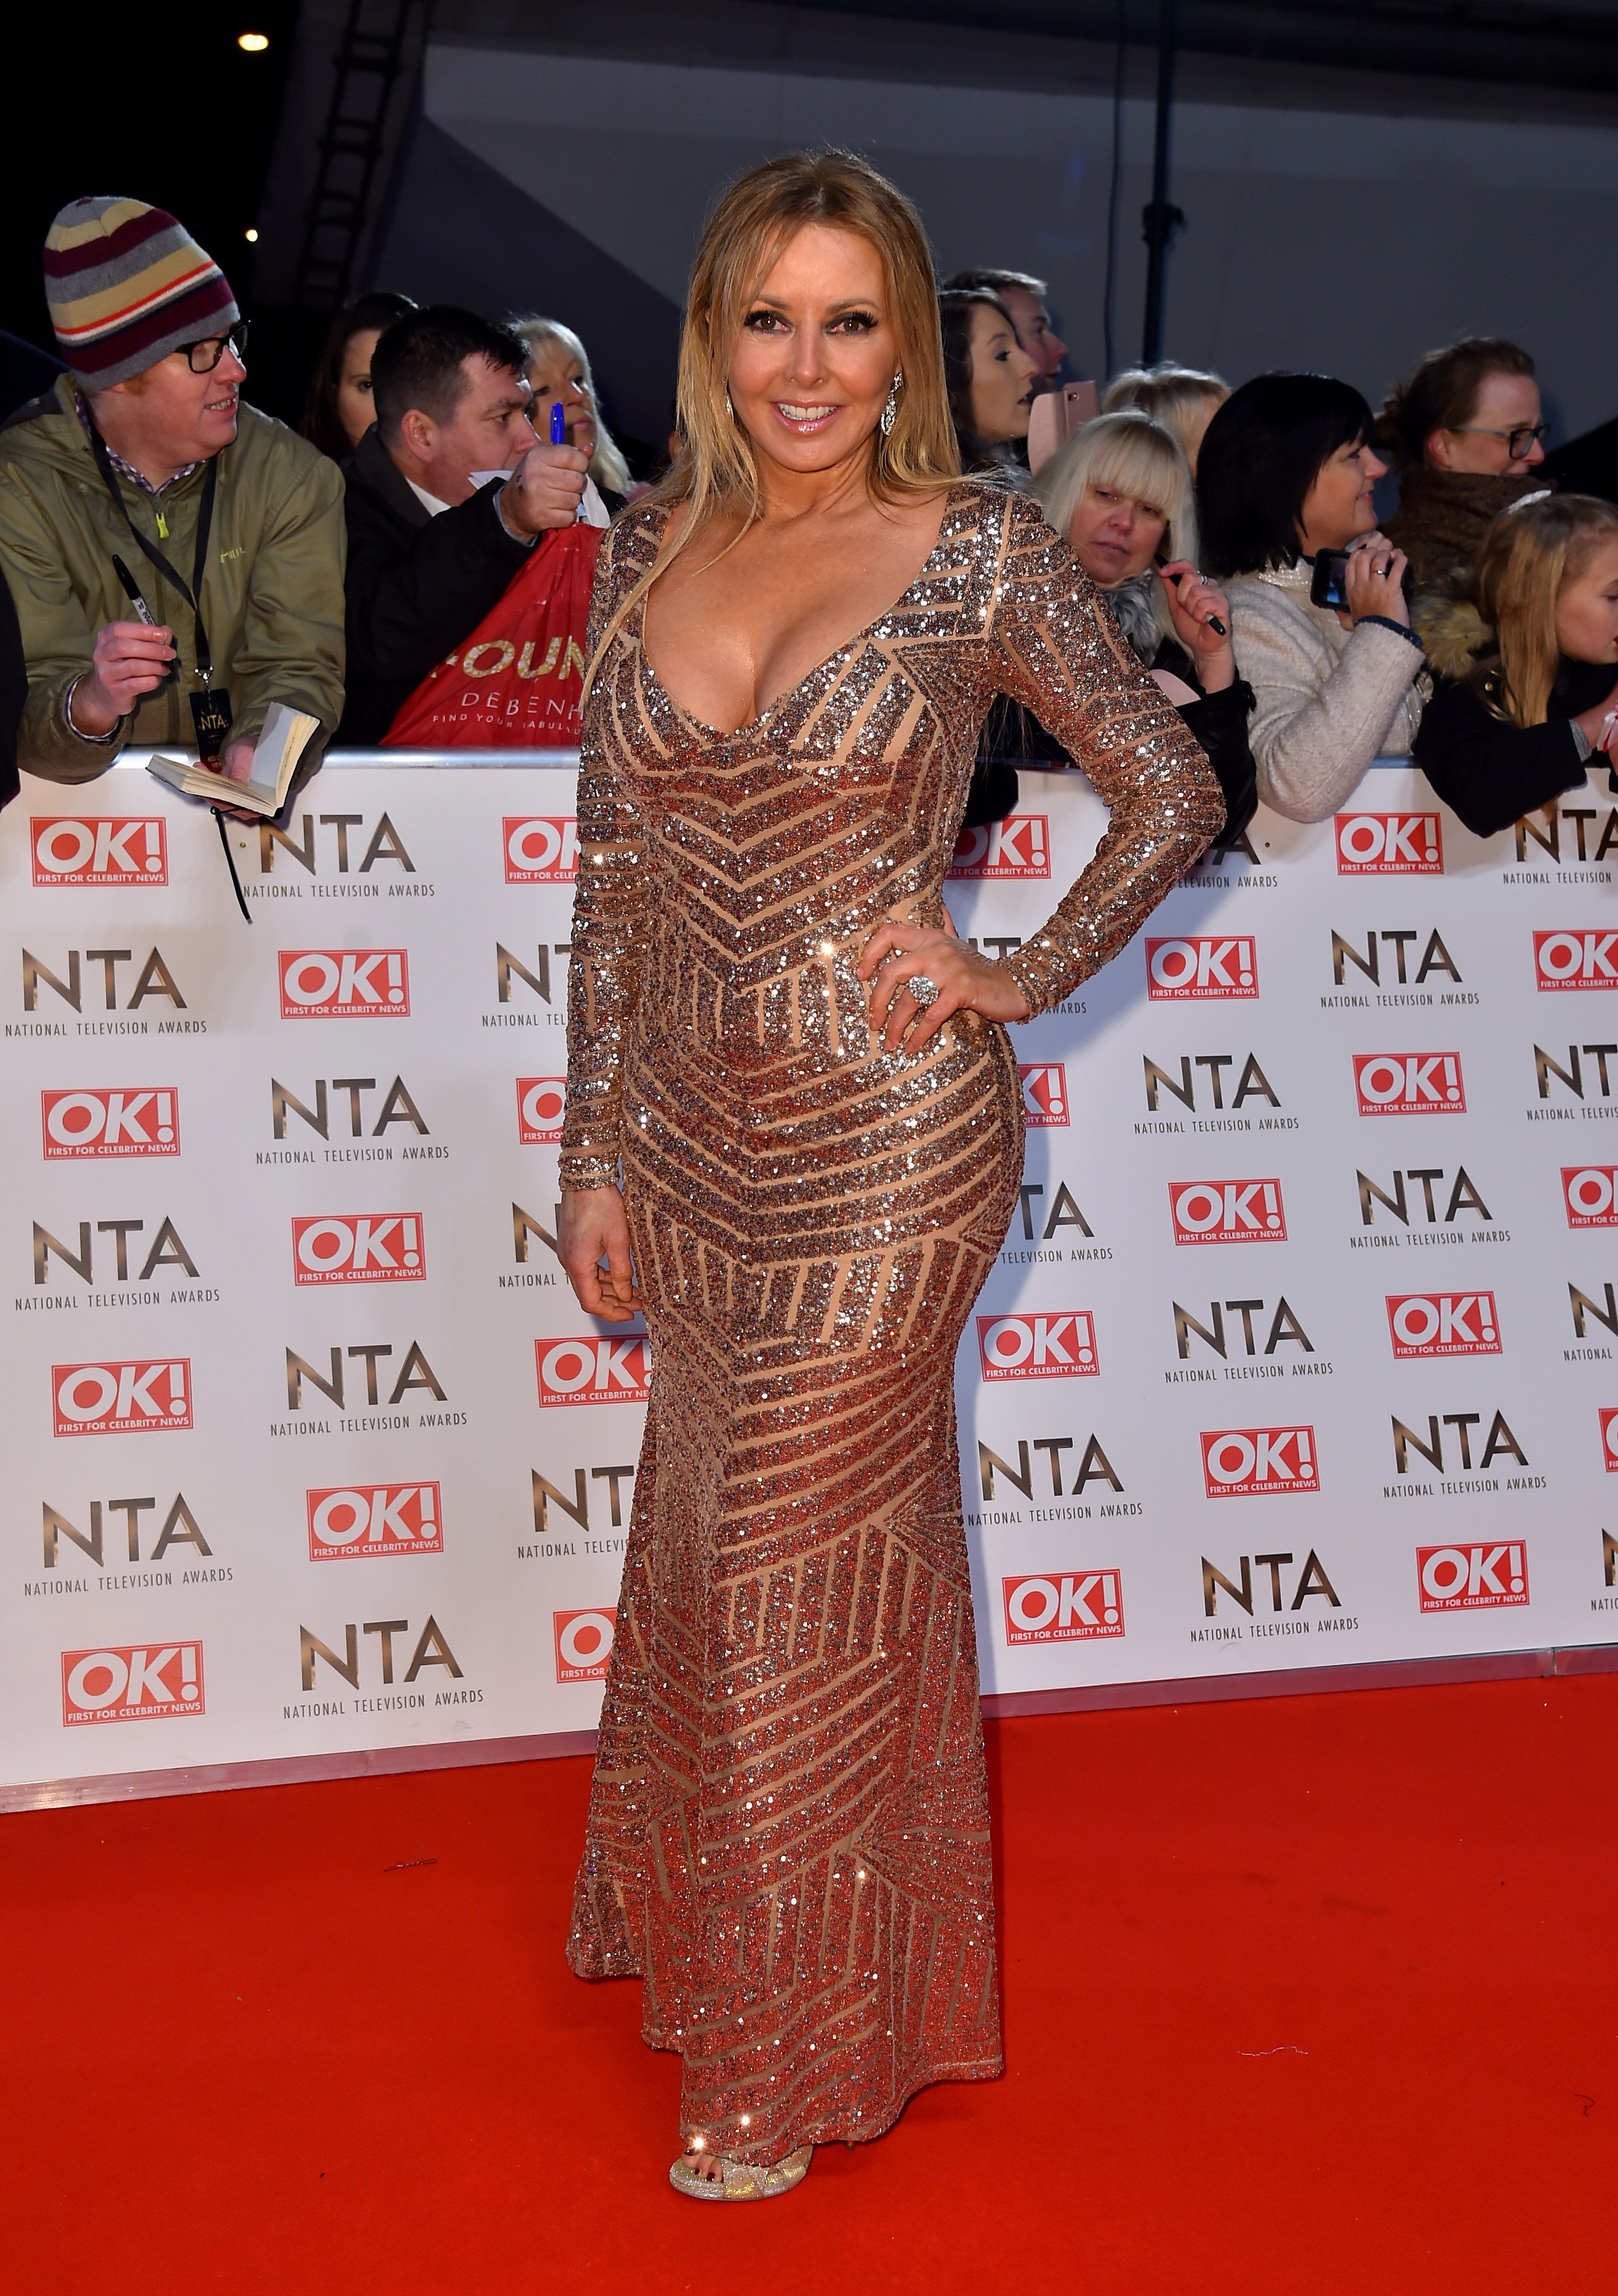 Carol Vorderman Dazzles (Literally) On The NTAs Red Carpet In Jaw-Dropping Metallic